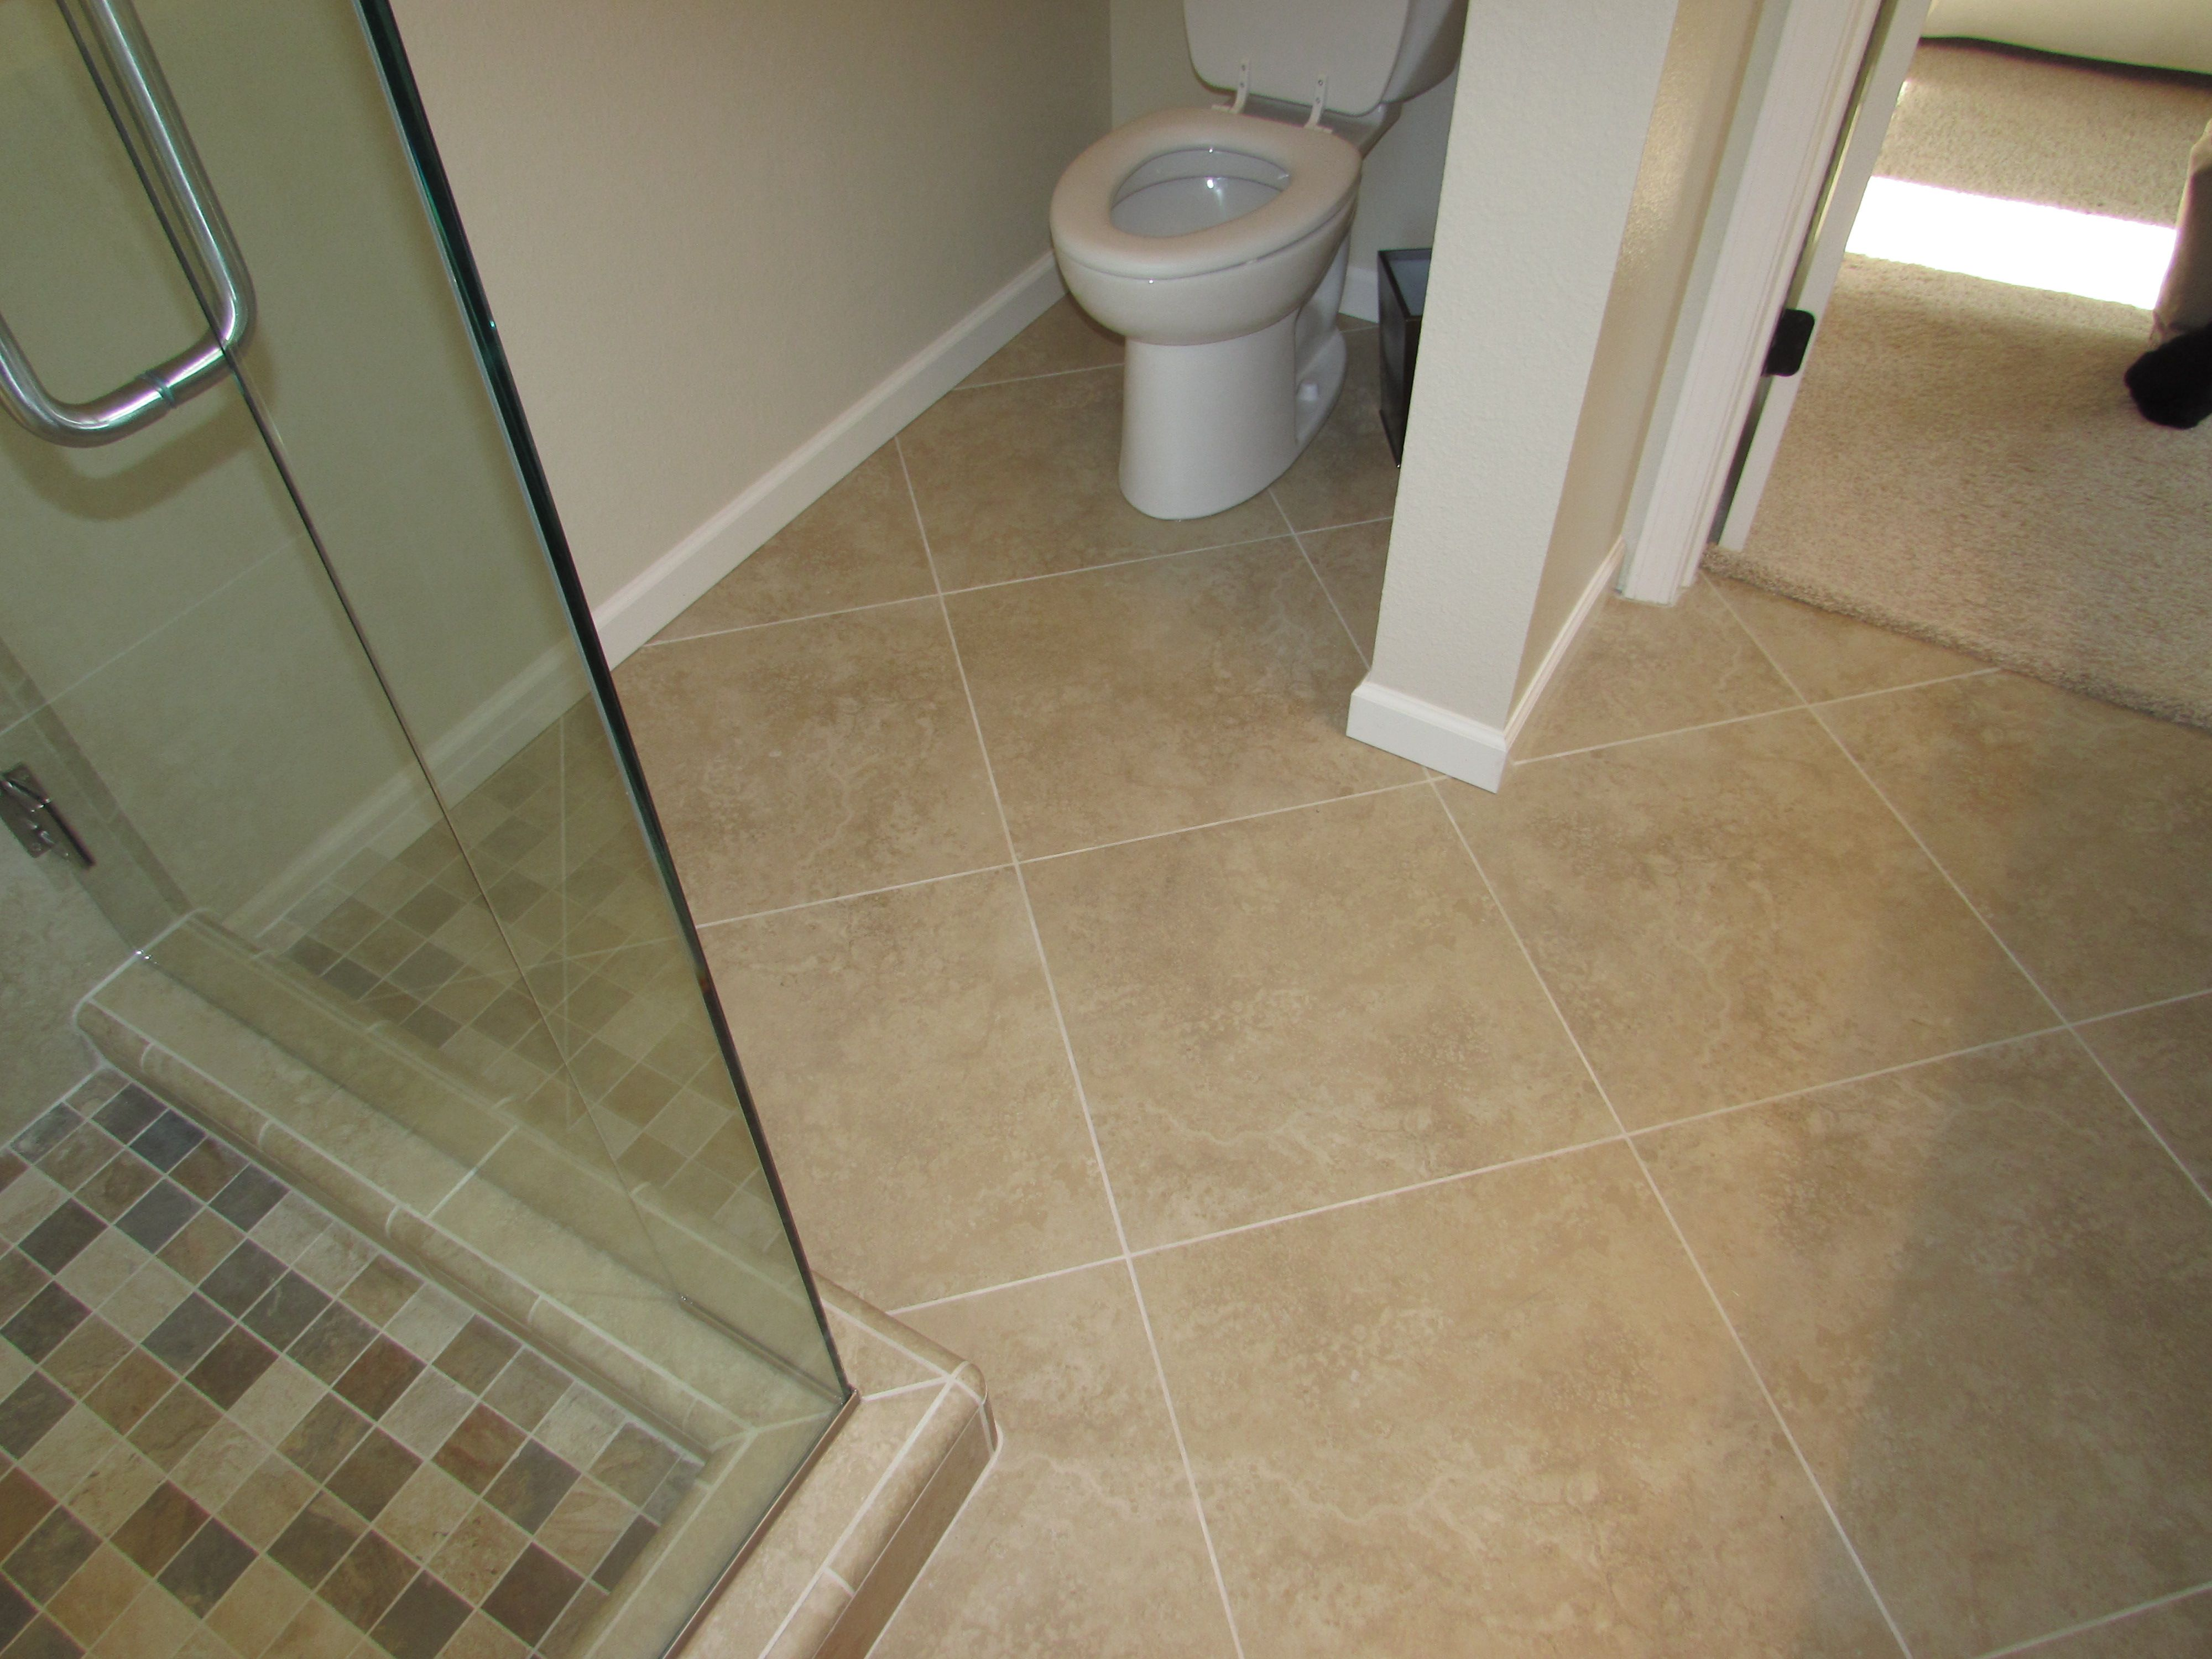 18 X 18 Rectified Porcelain Floor On A Diagonal Pattern On